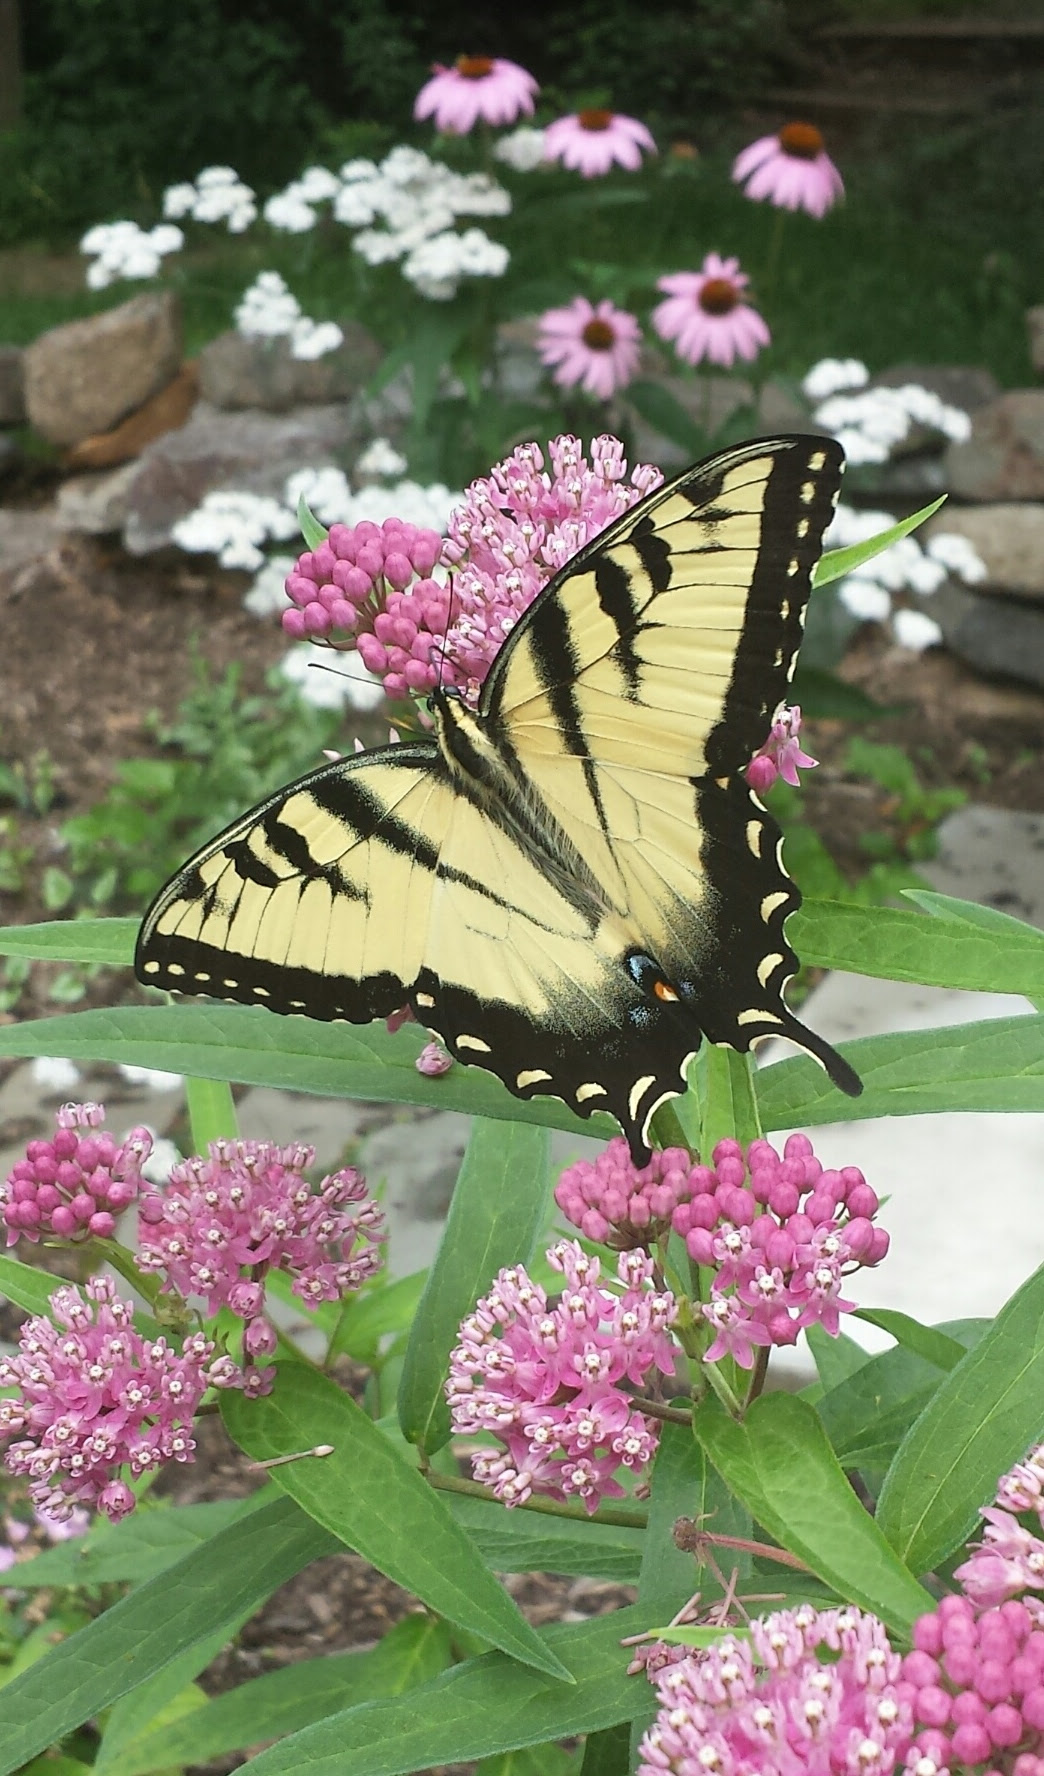 Butterfly Garden – County of Union, New Jersey